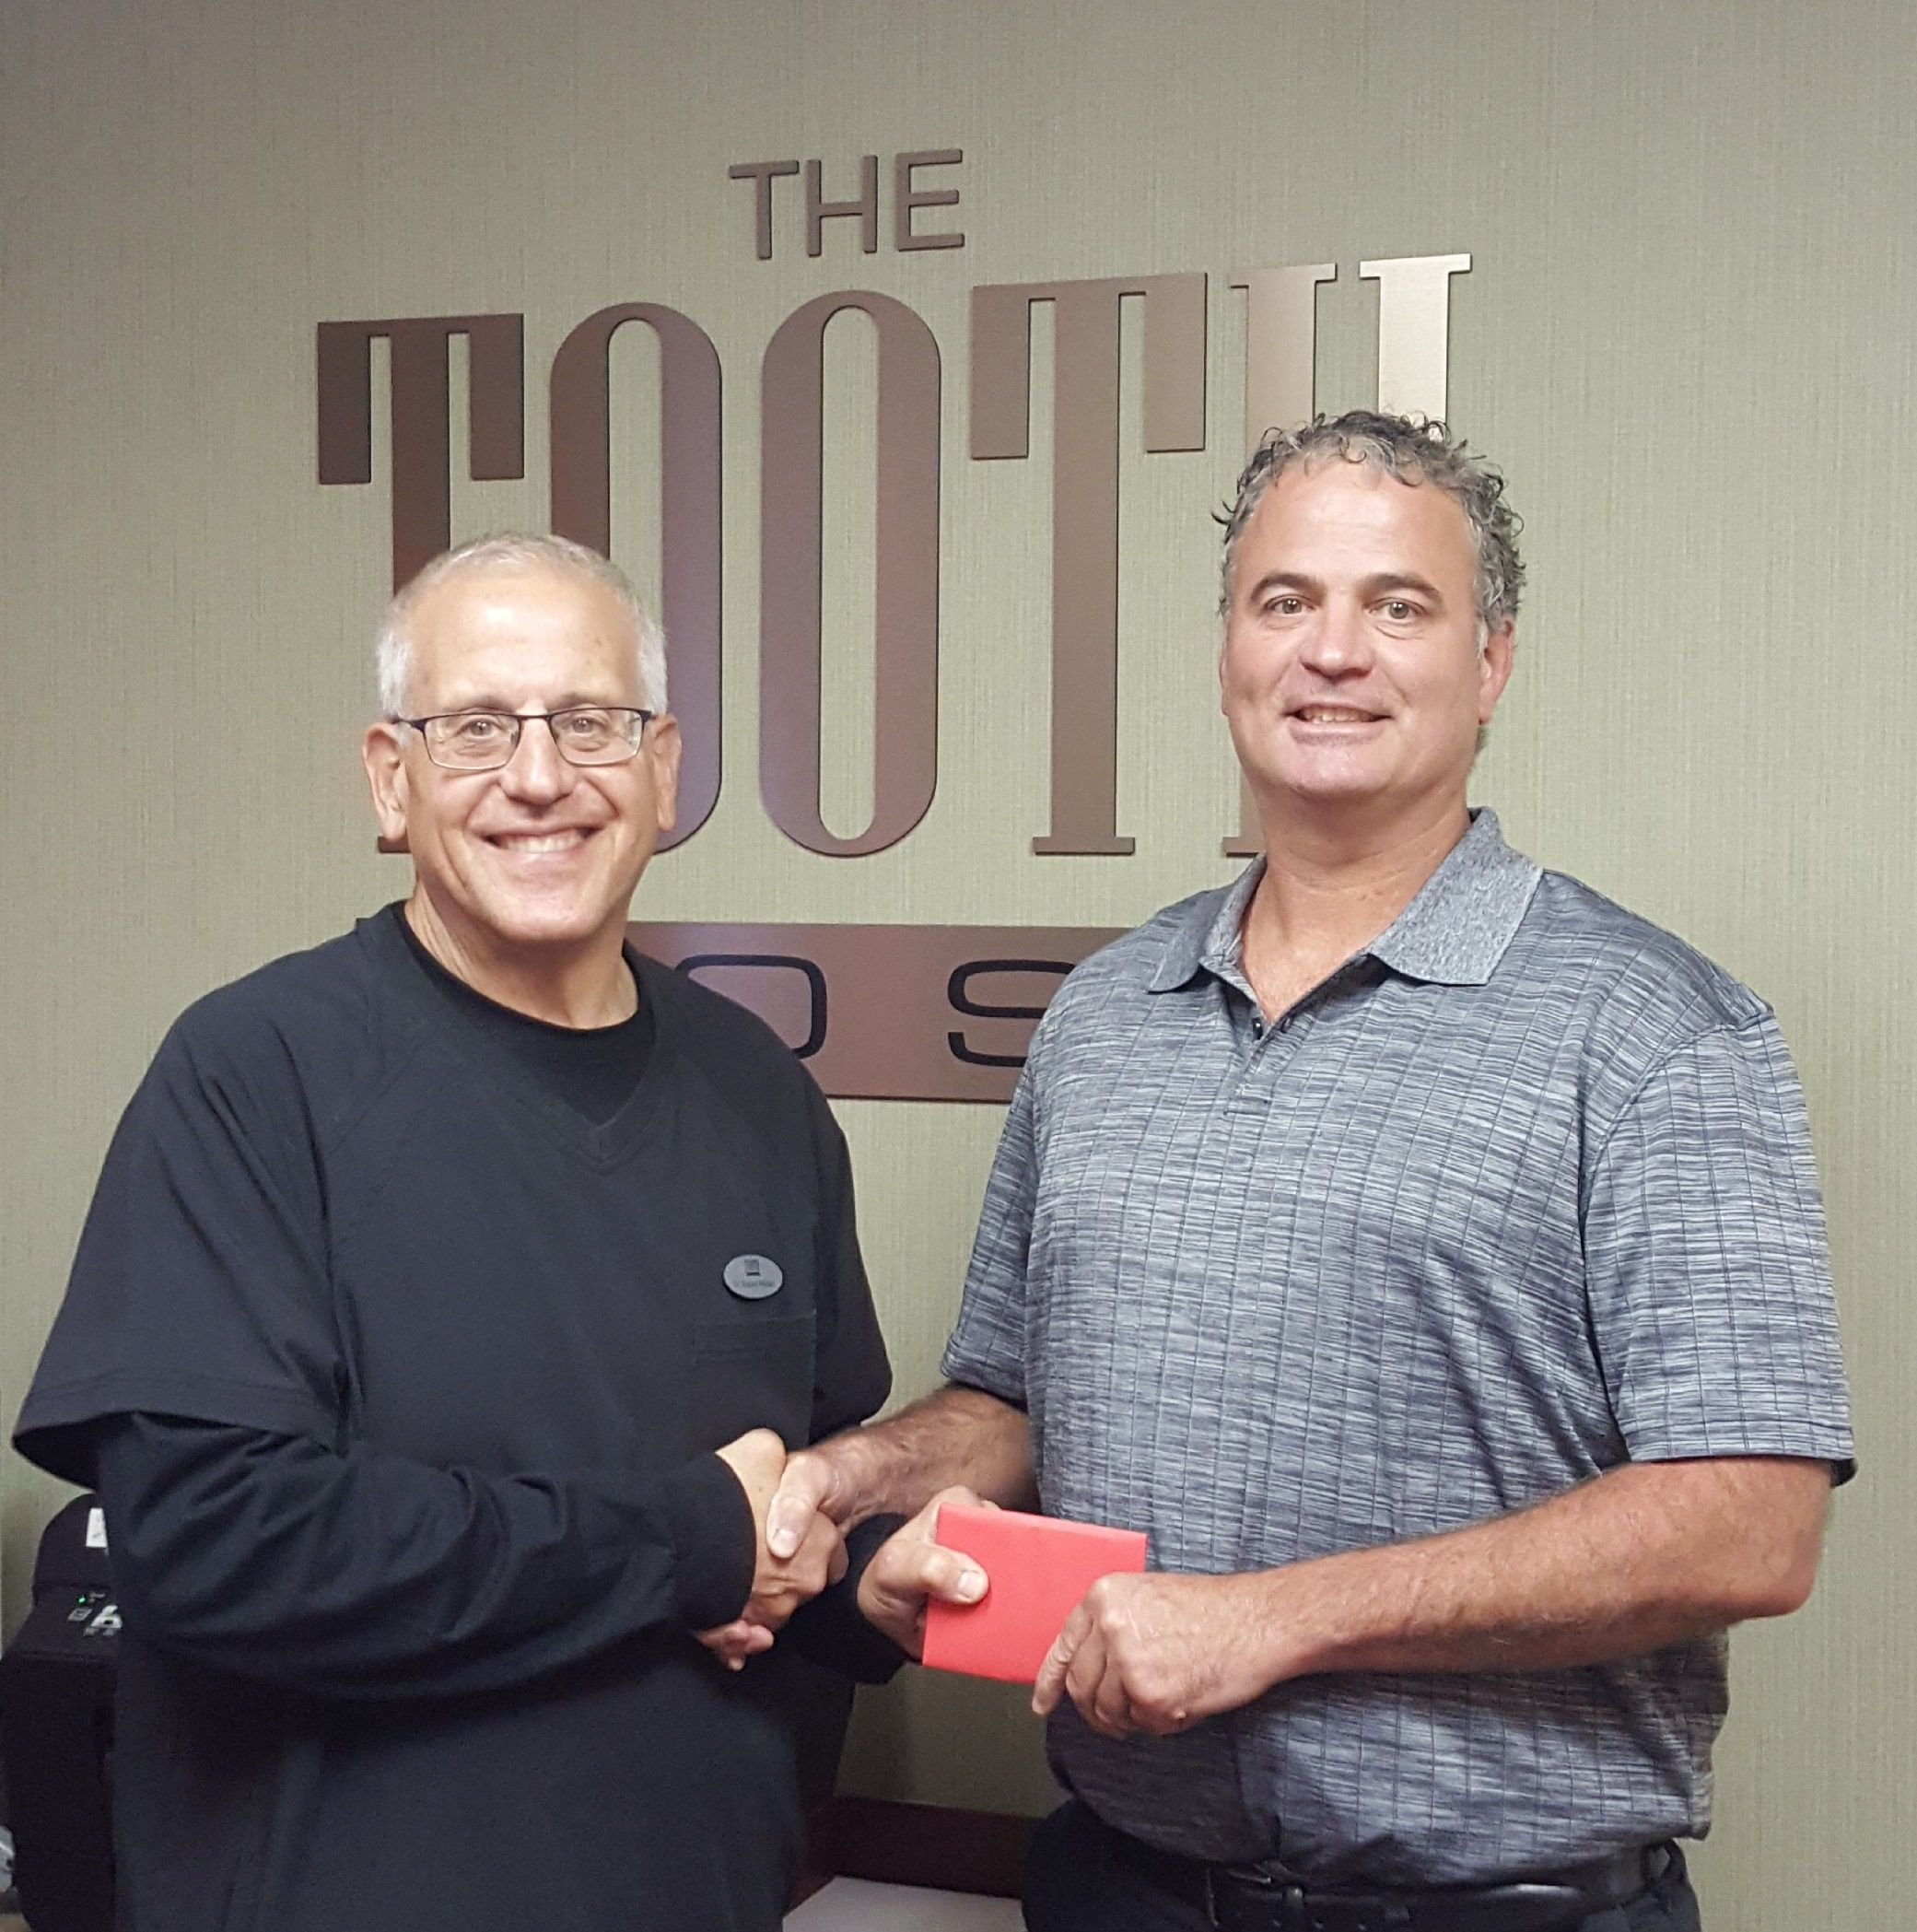 South Weymouth Dentist Richard Wolfert with Brian Dean